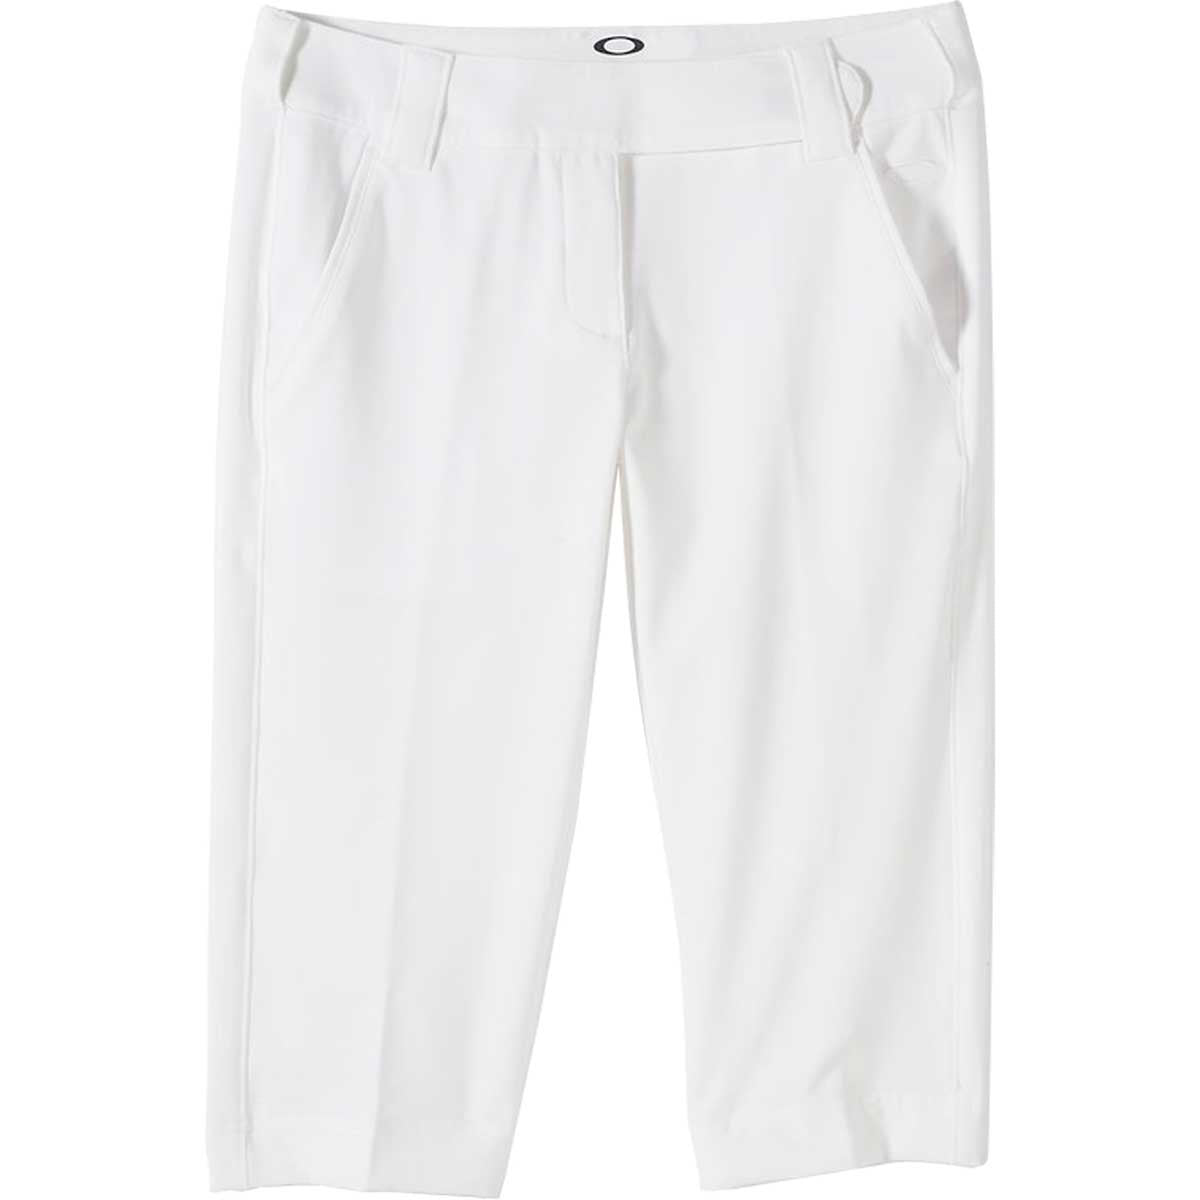 Oakley Albatross Capri Women's Pants-521412